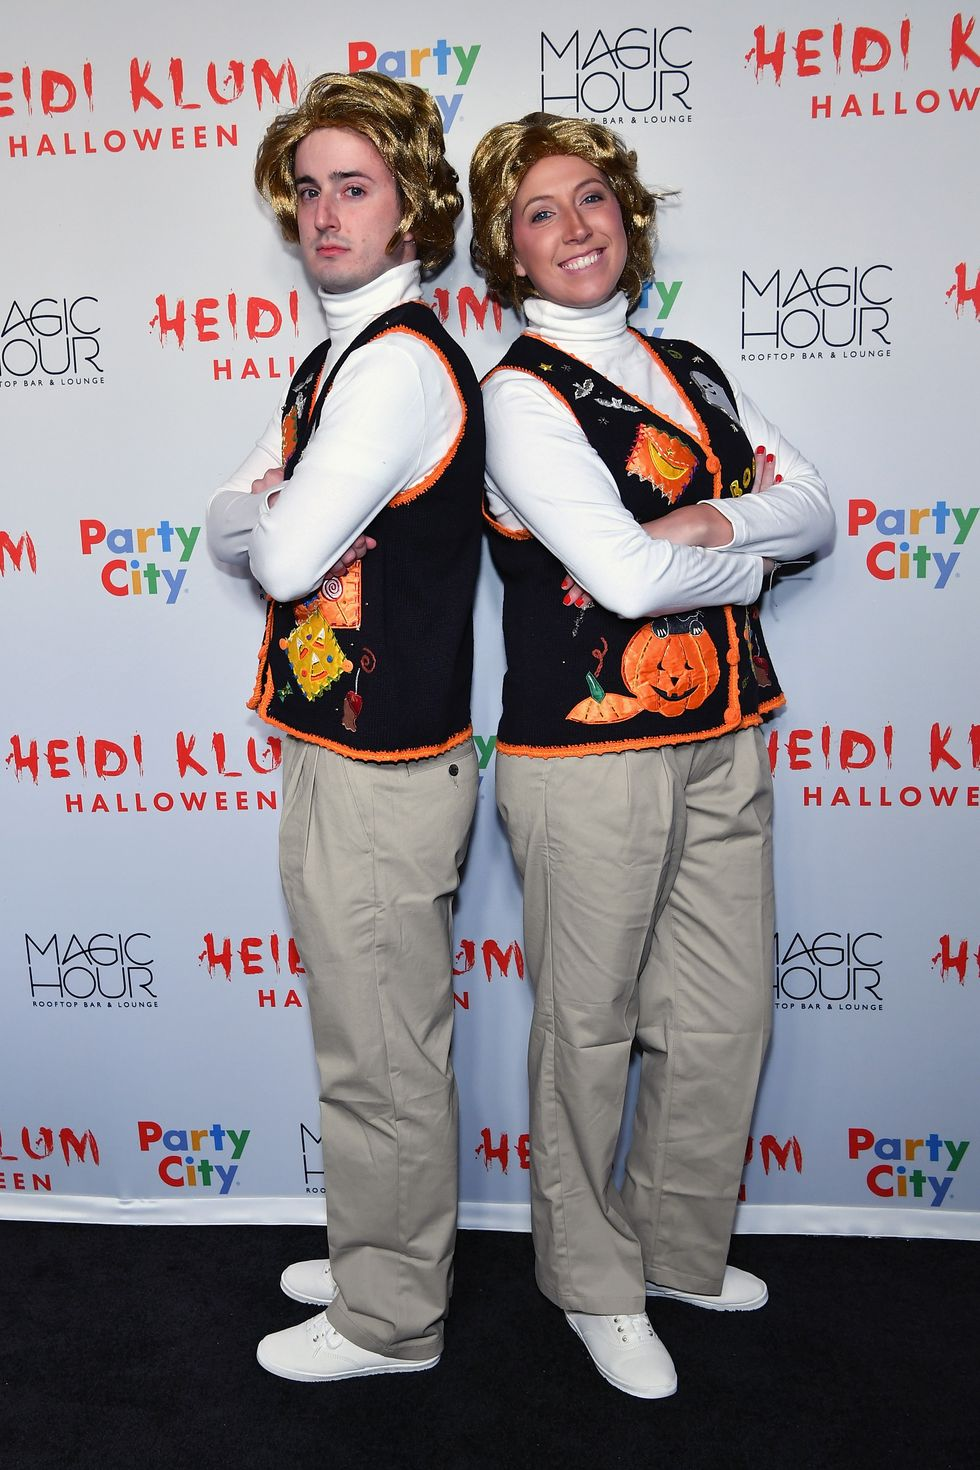 Bryce Dalzin and Erin Riley - 'SNL' Actors Are you and your partner Saturday Night Live fans? If so, steal this creative costume from Bryce Dalzin and Erin Riley, who hit Heidi Klum's Halloween party in 2018 dressed as Garth and Kat from the hysterical show.